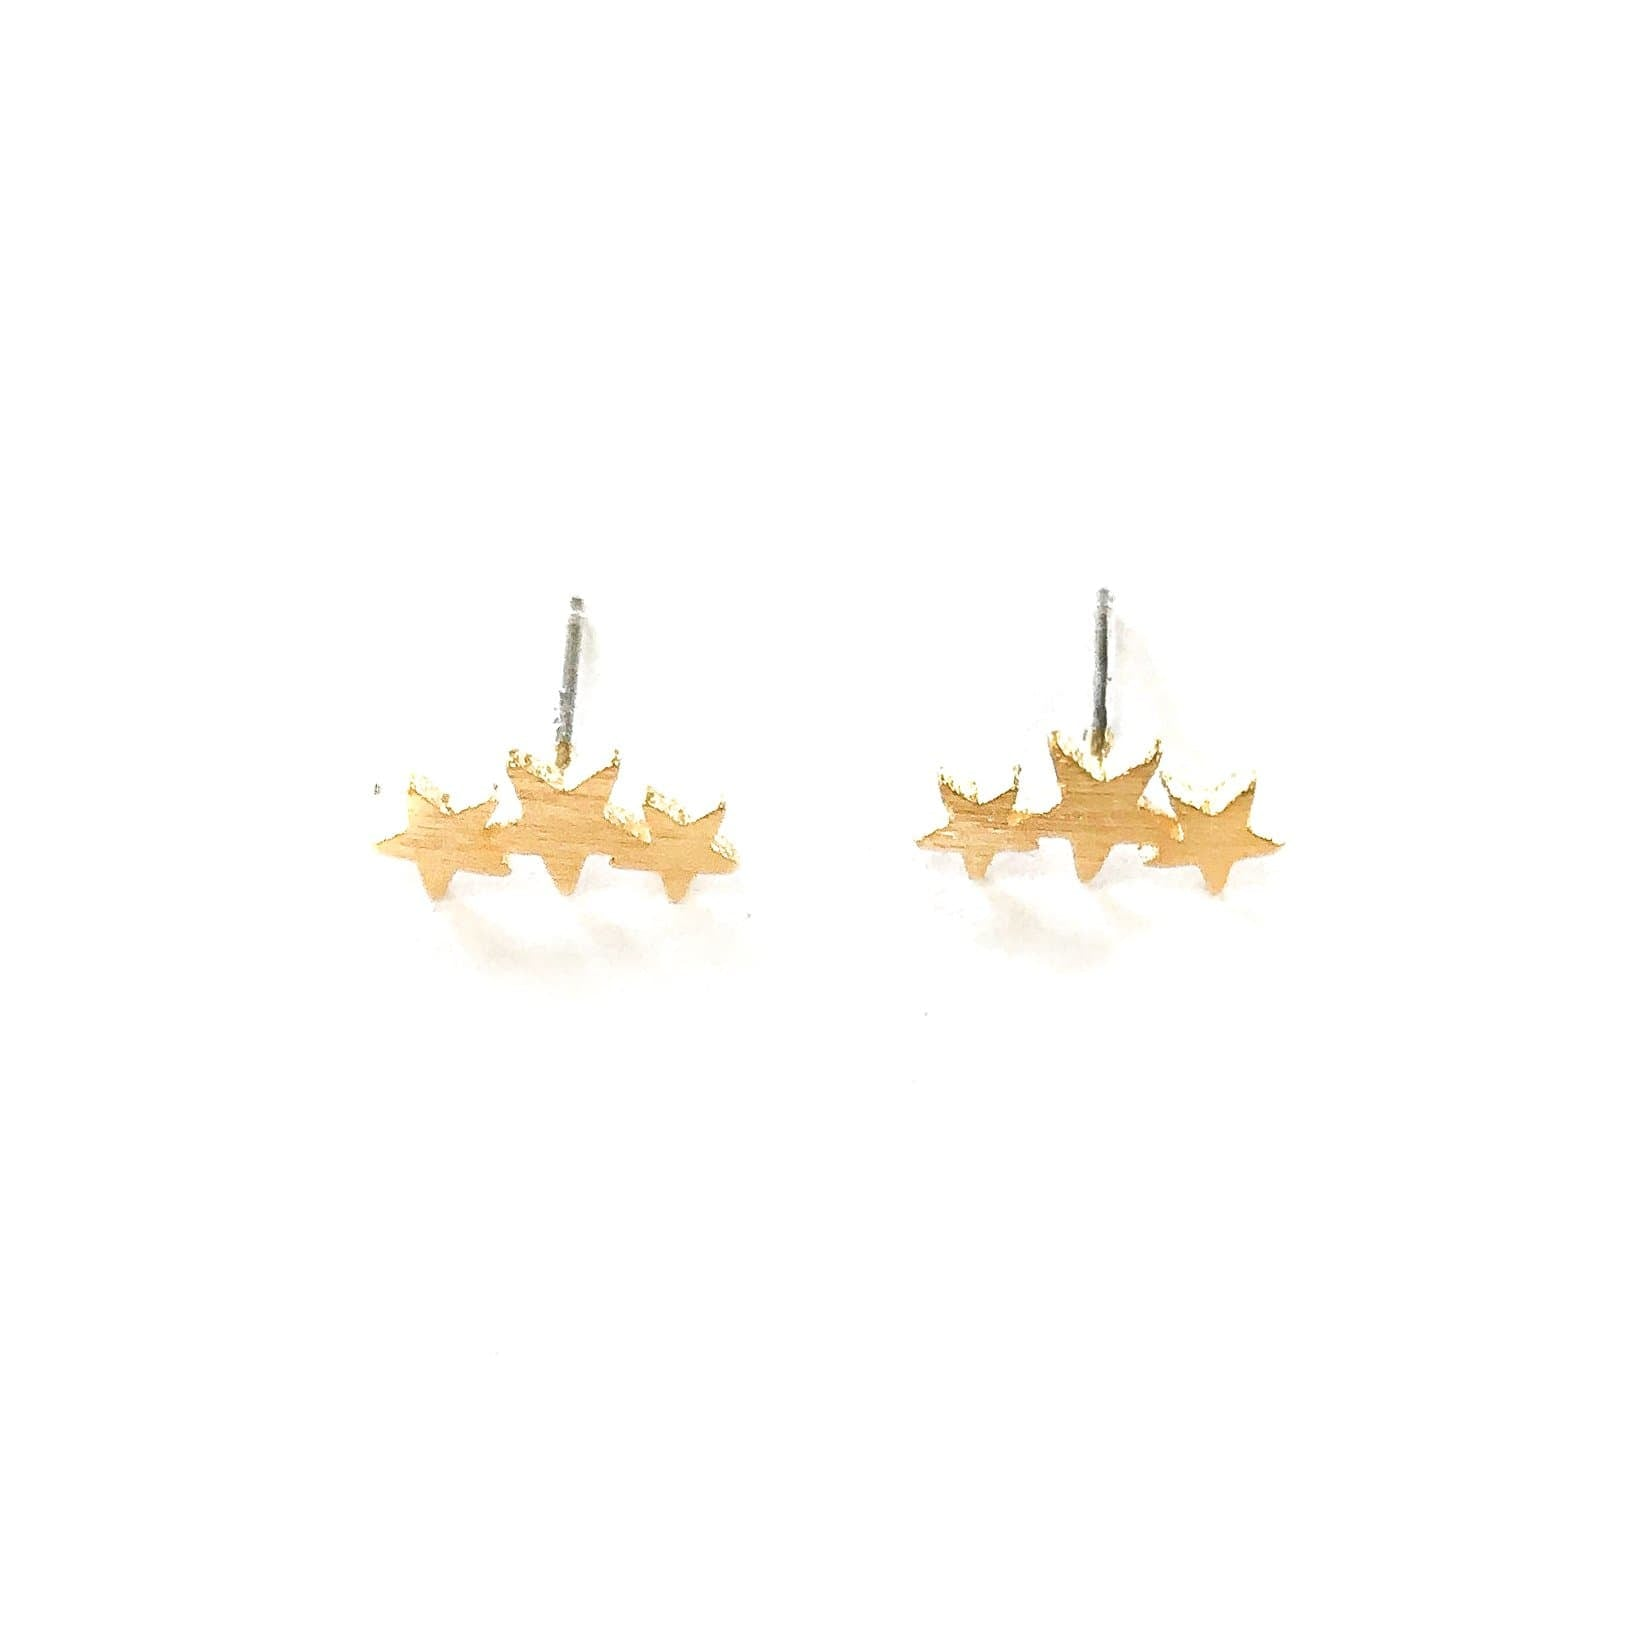 Triple Star Stud, Earrings, adorn512, adorn512